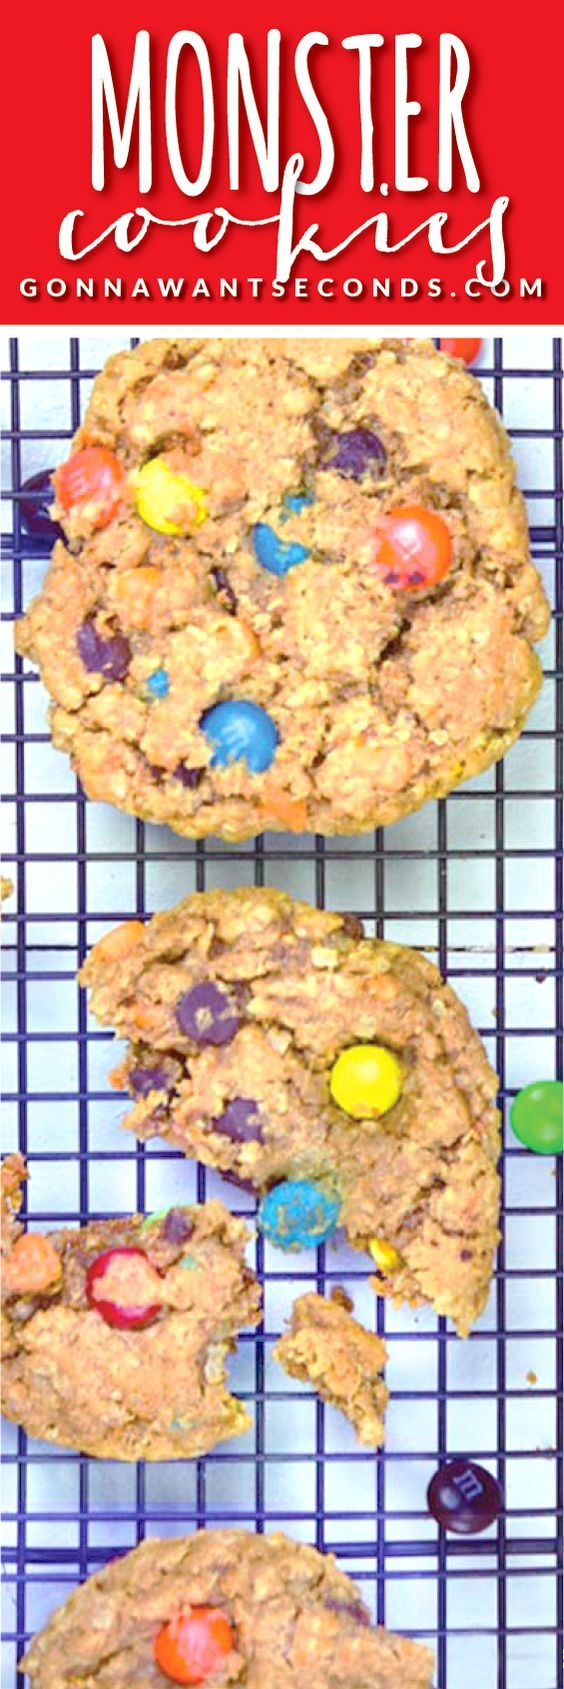 Monster Cookies- these cookies are always a family favorite! Loaded with oats, peanut butter and Tons of goodies! Super easy to make. All you need is a large bowl and wooden spoon!